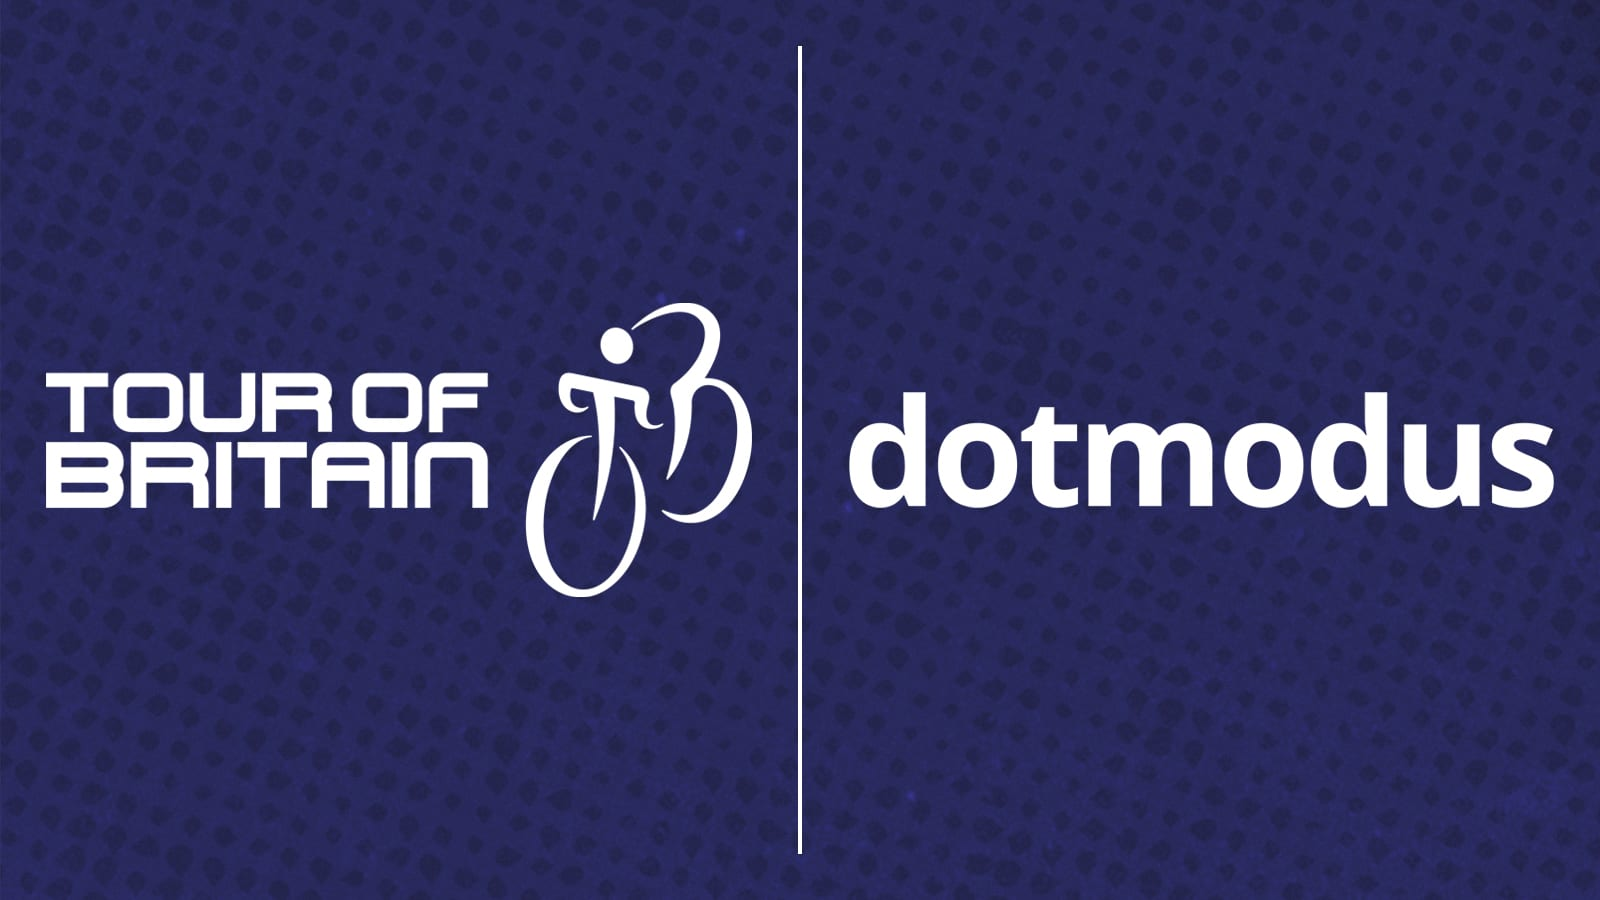 Tour of Britain DotModus